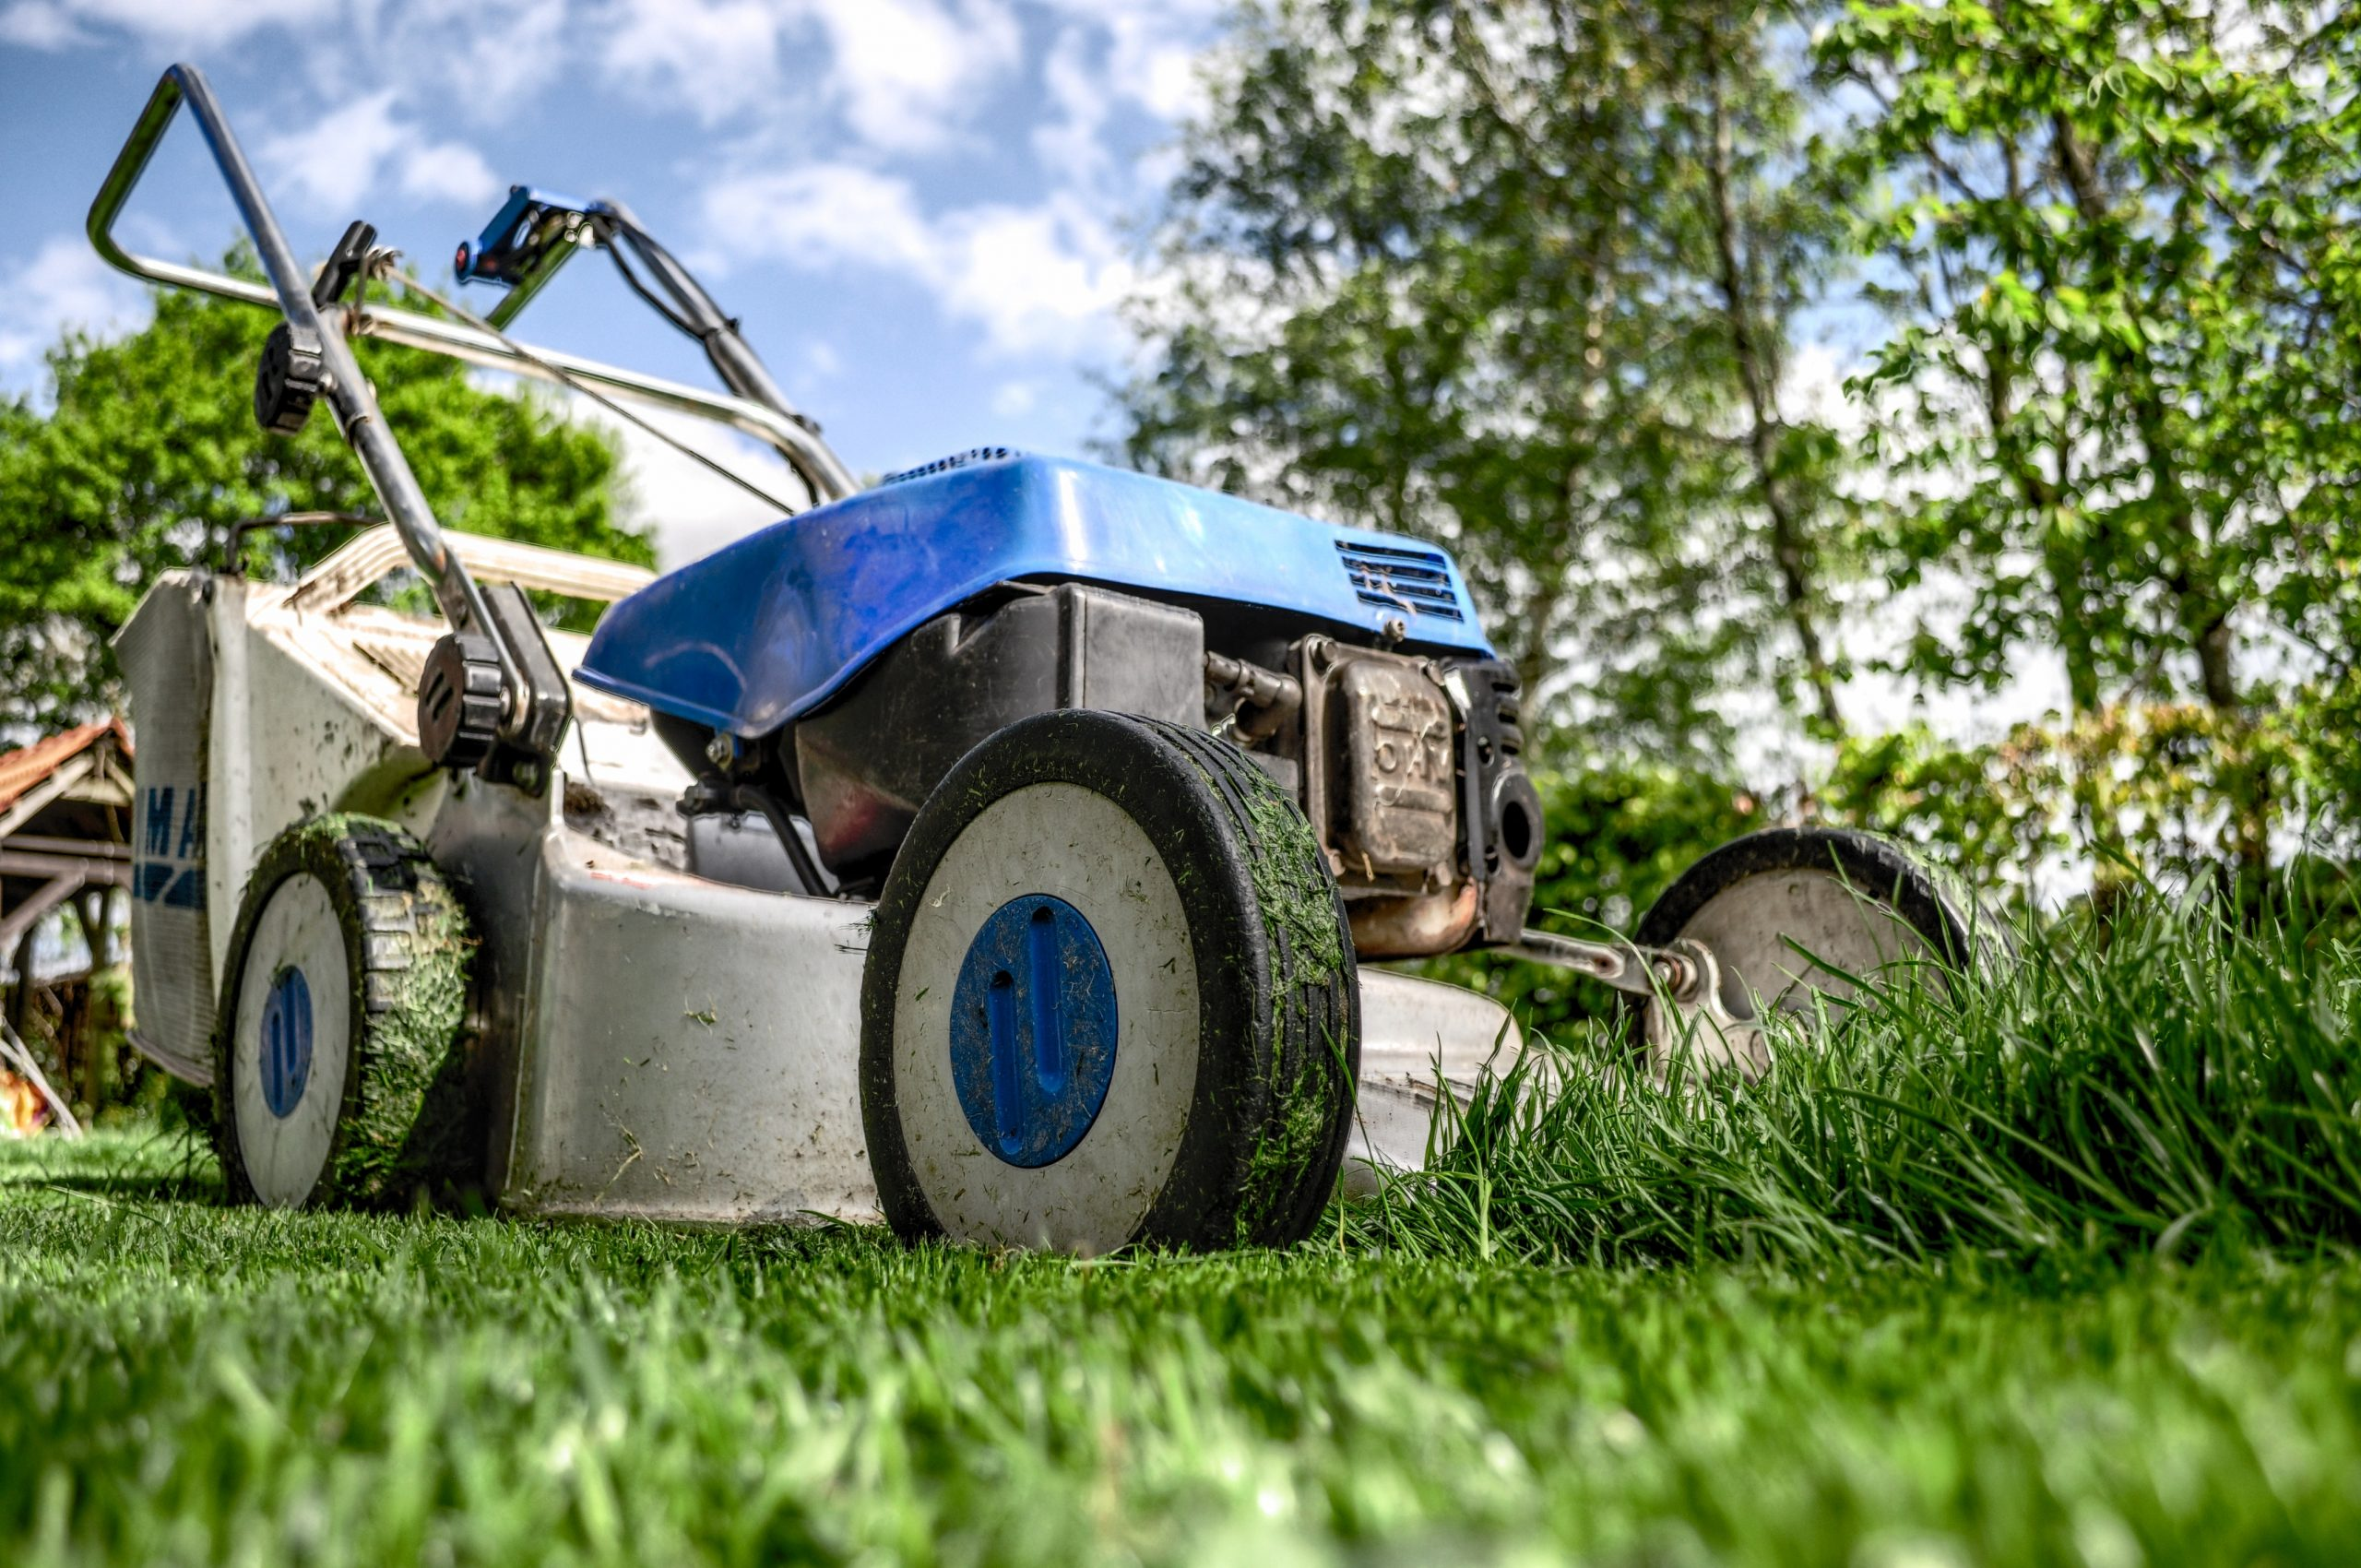 You are currently viewing Landscaping Tools: Which Are the Best for Reducing Noise?